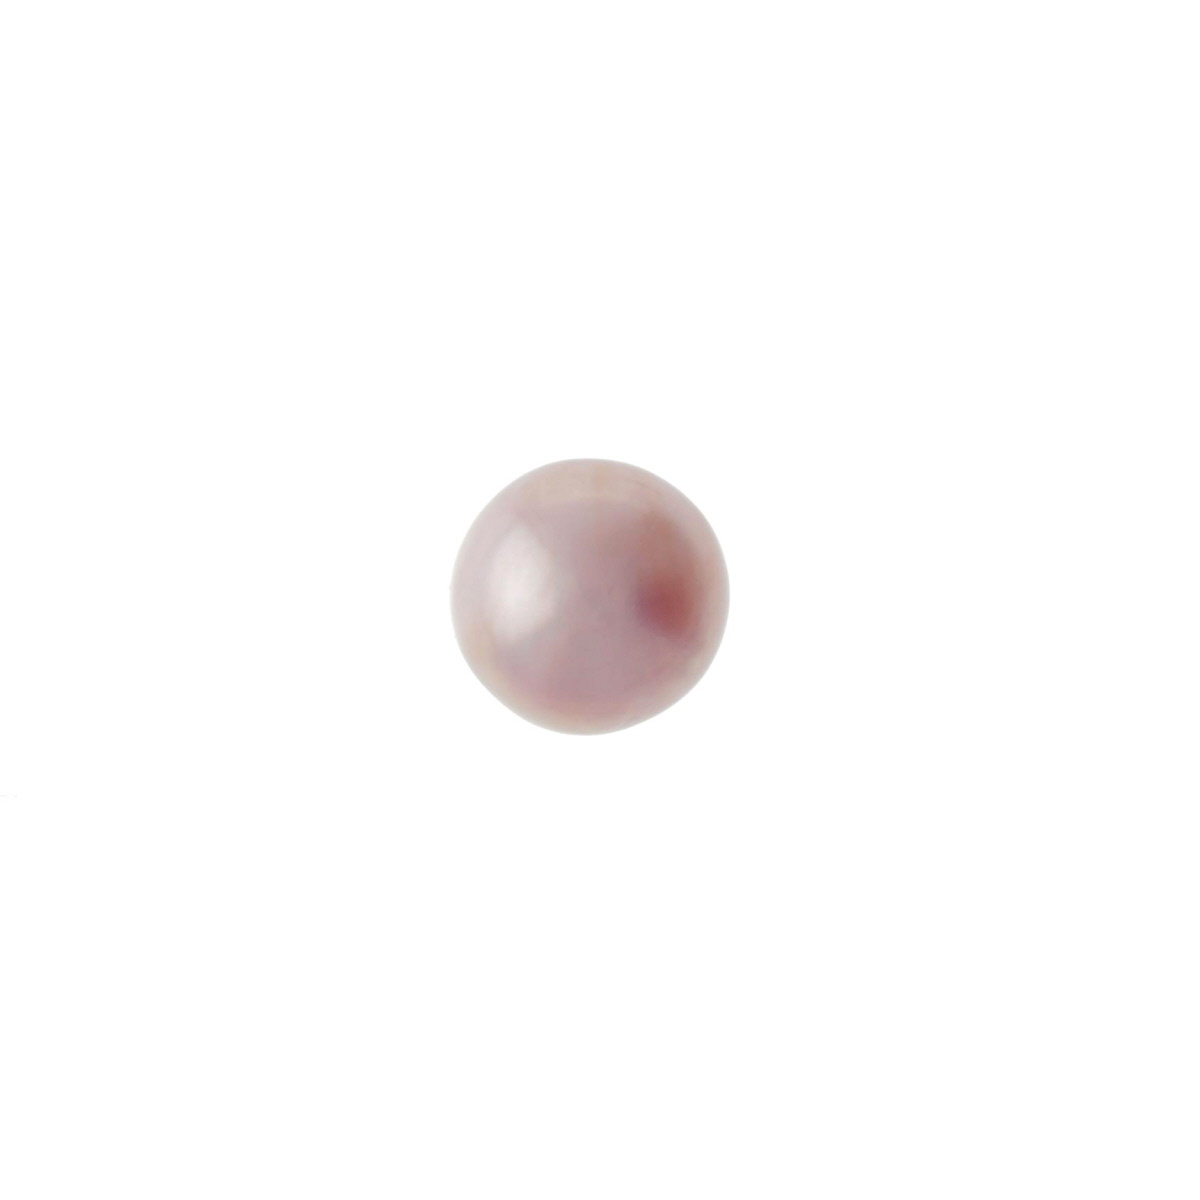 White Mabe Pearl 9 to 10mm  - Pack of 1